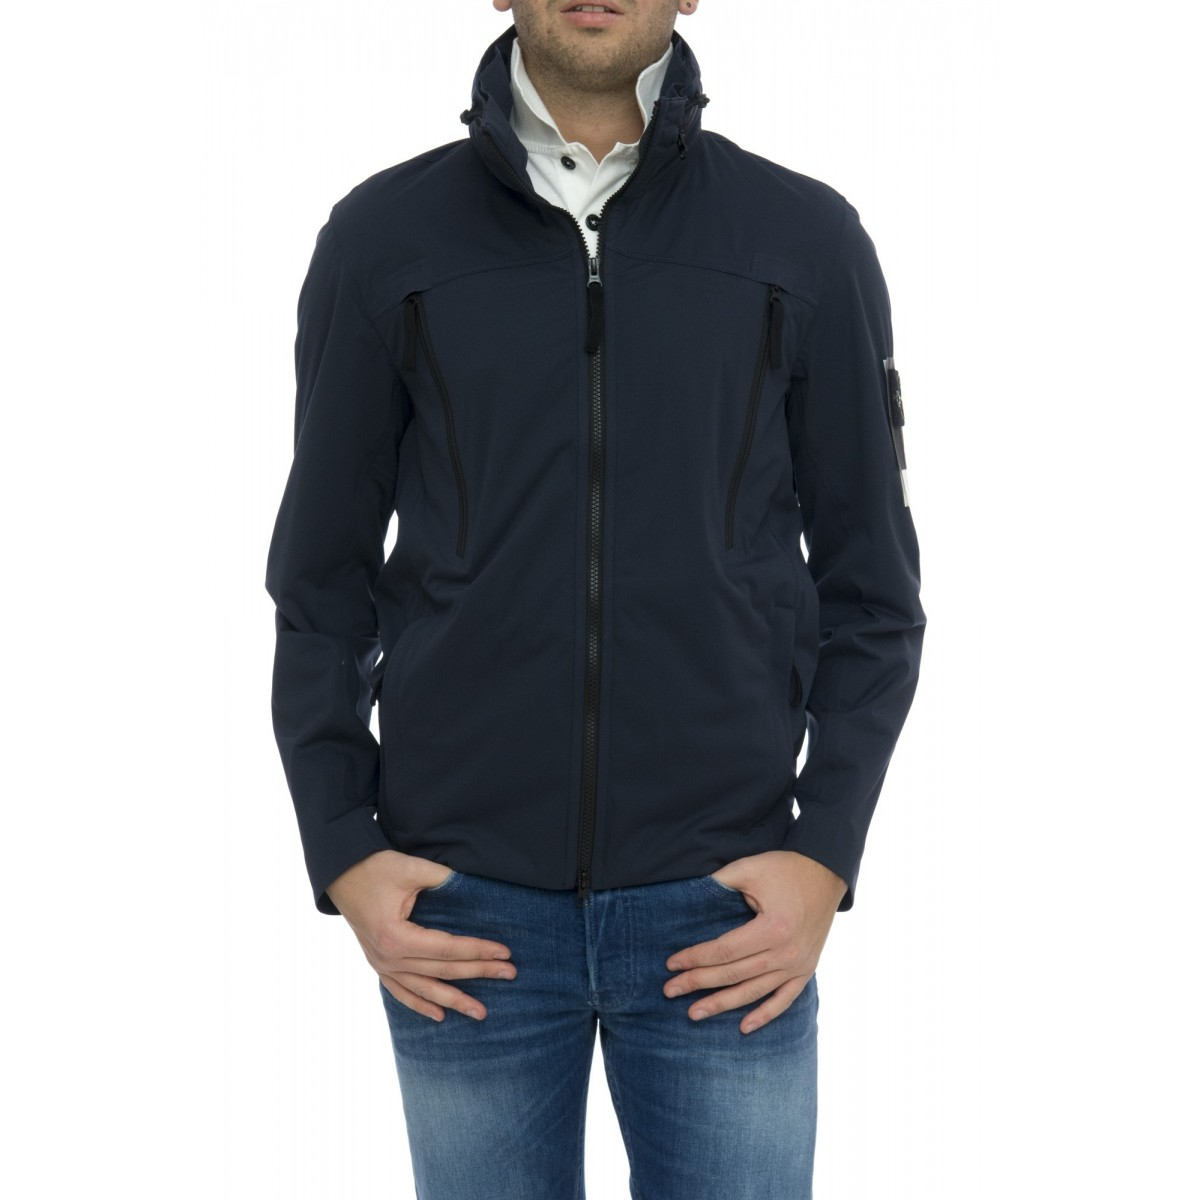 Sport Jacket - 41826 soft shell